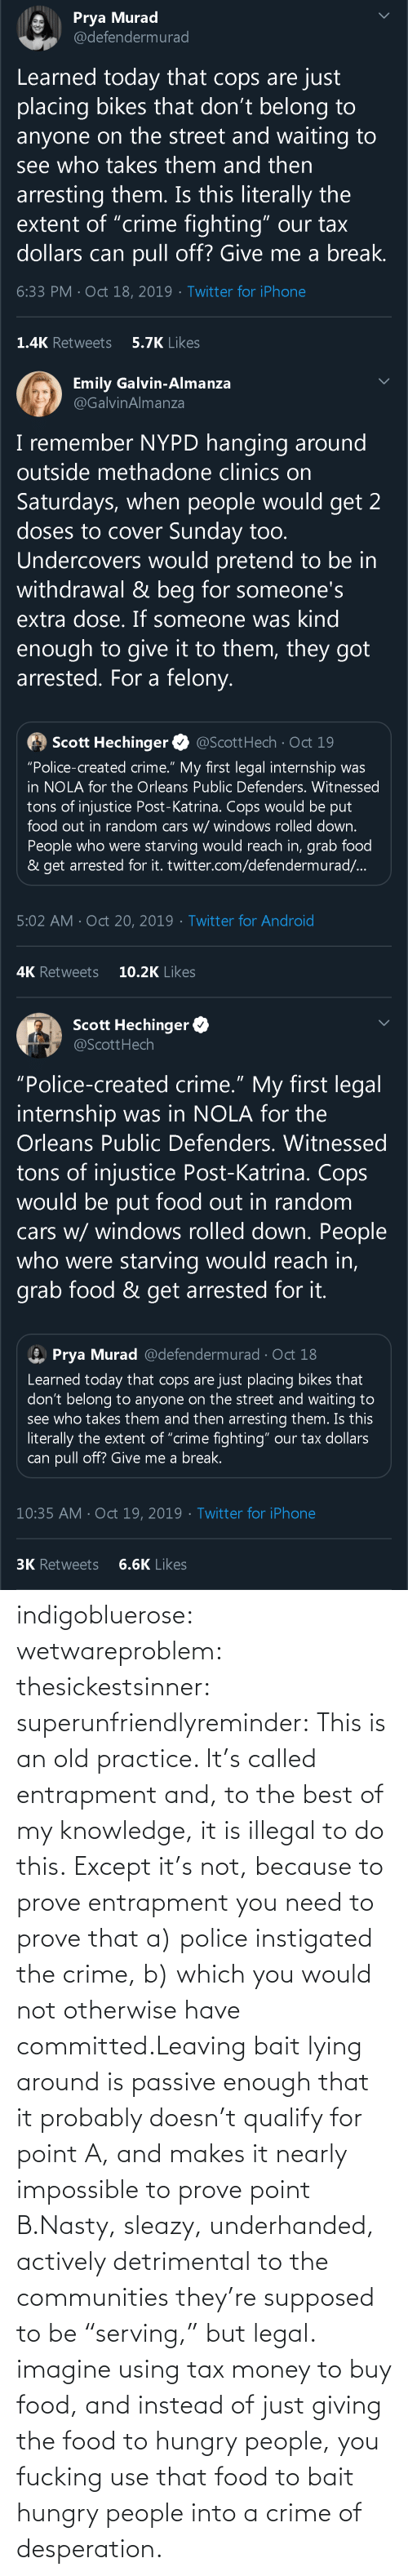 "Old: indigobluerose: wetwareproblem:  thesickestsinner:  superunfriendlyreminder:   This is an old practice.    It's called entrapment and, to the best of my knowledge, it is illegal to do this.  Except it's not, because to prove entrapment you need to prove that a) police instigated the crime, b) which you would not otherwise have committed.Leaving bait lying around is passive enough that it probably doesn't qualify for point A, and makes it nearly impossible to prove point B.Nasty, sleazy, underhanded, actively detrimental to the communities they're supposed to be ""serving,"" but legal.  imagine using tax money to buy food, and instead of just giving the food to hungry people, you fucking use that food to bait hungry people into a crime of desperation."